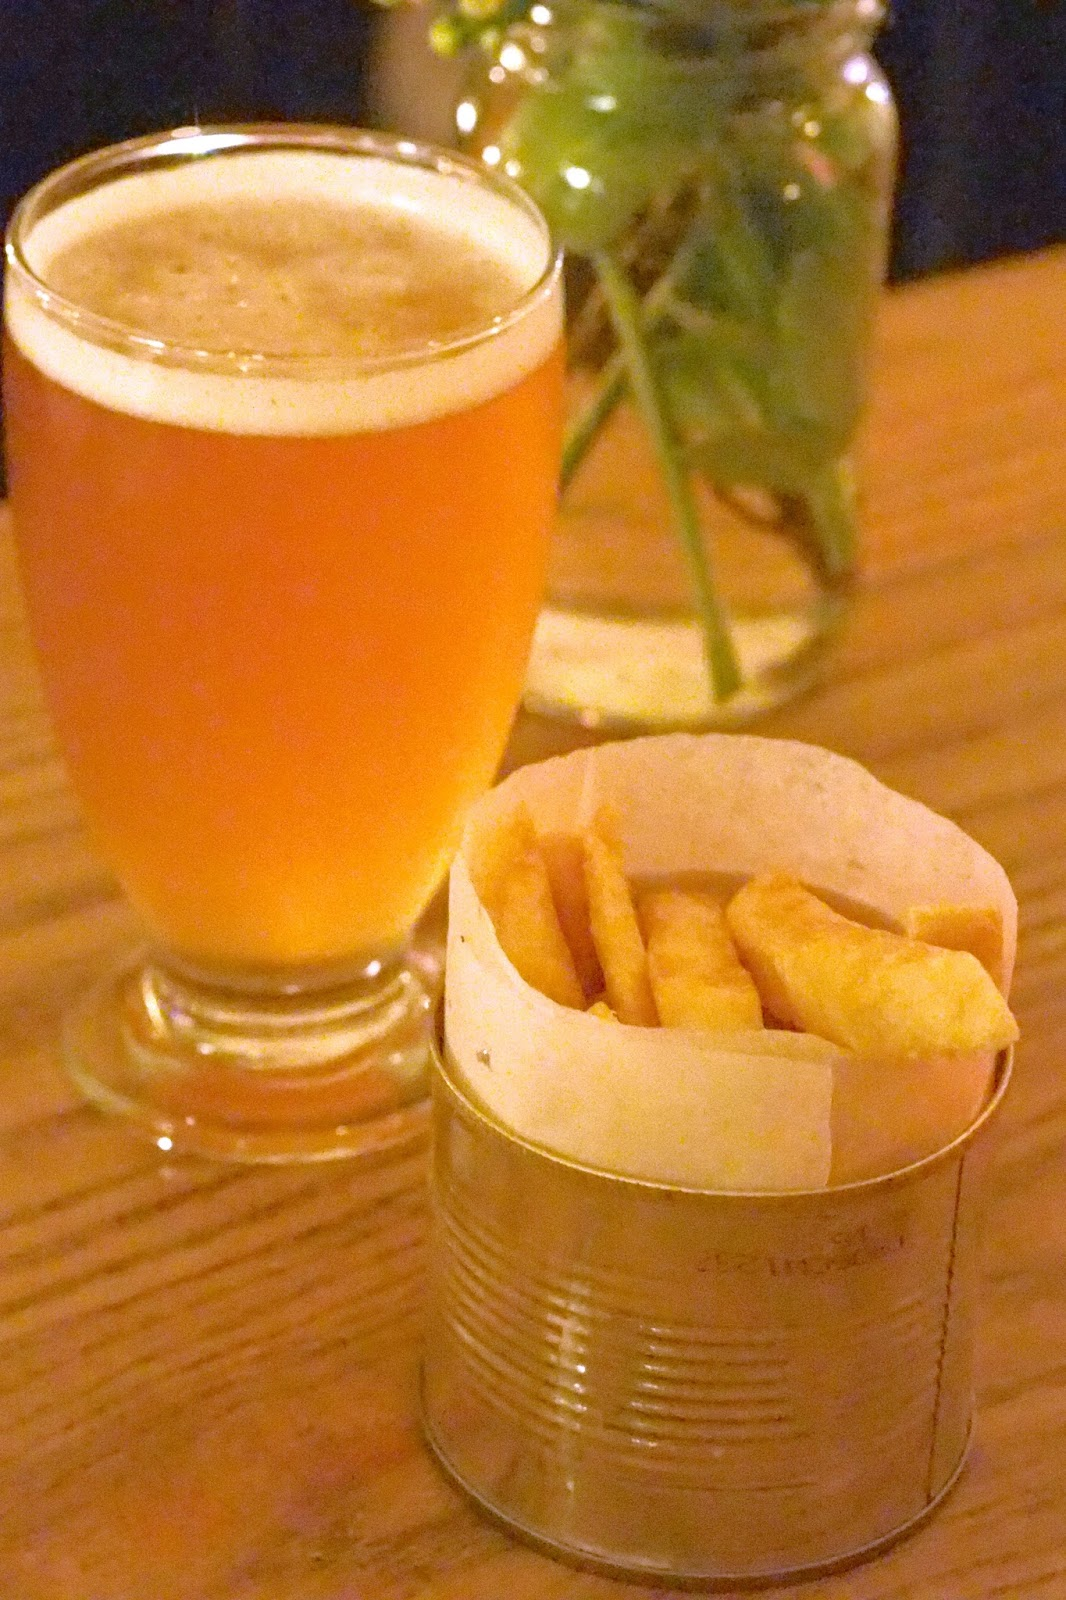 pint of beer with portion of fries